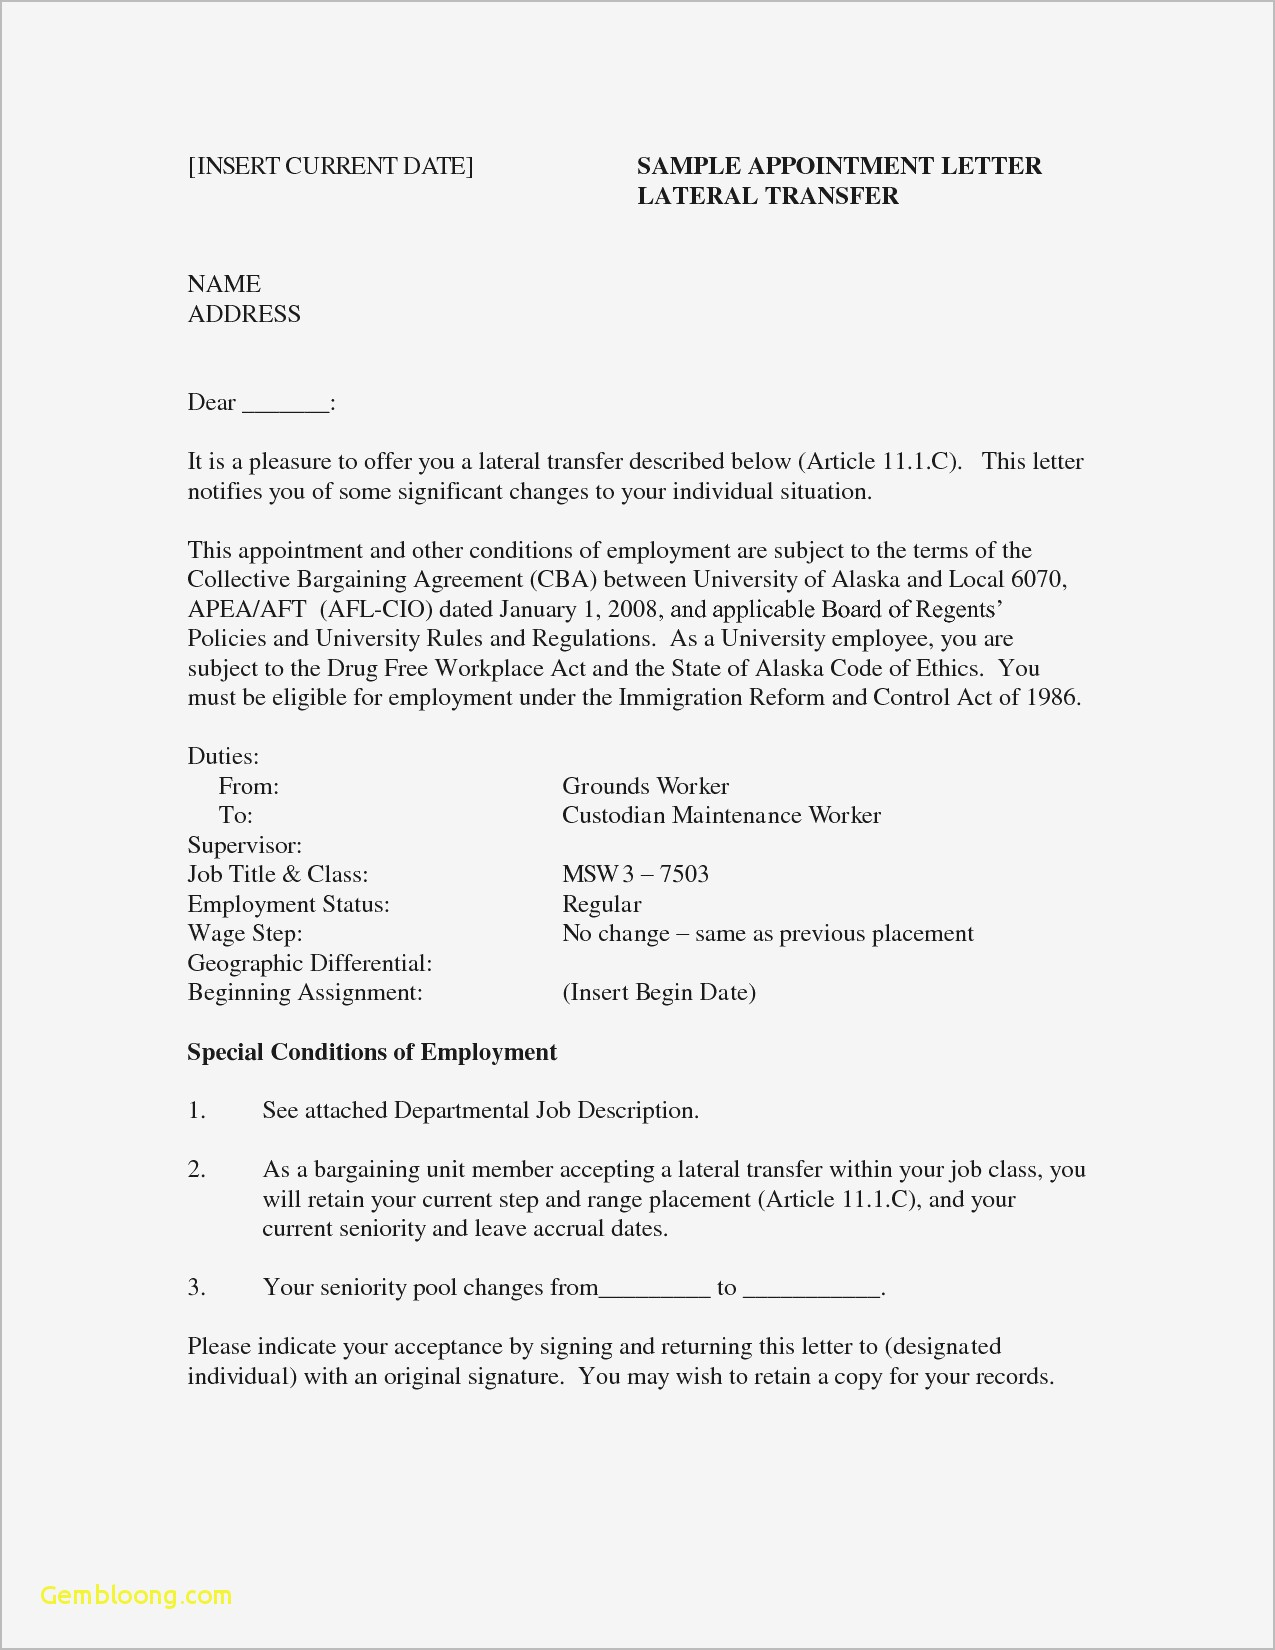 Cover Letter Template Pdf - Cover Letters Templates Pdf format